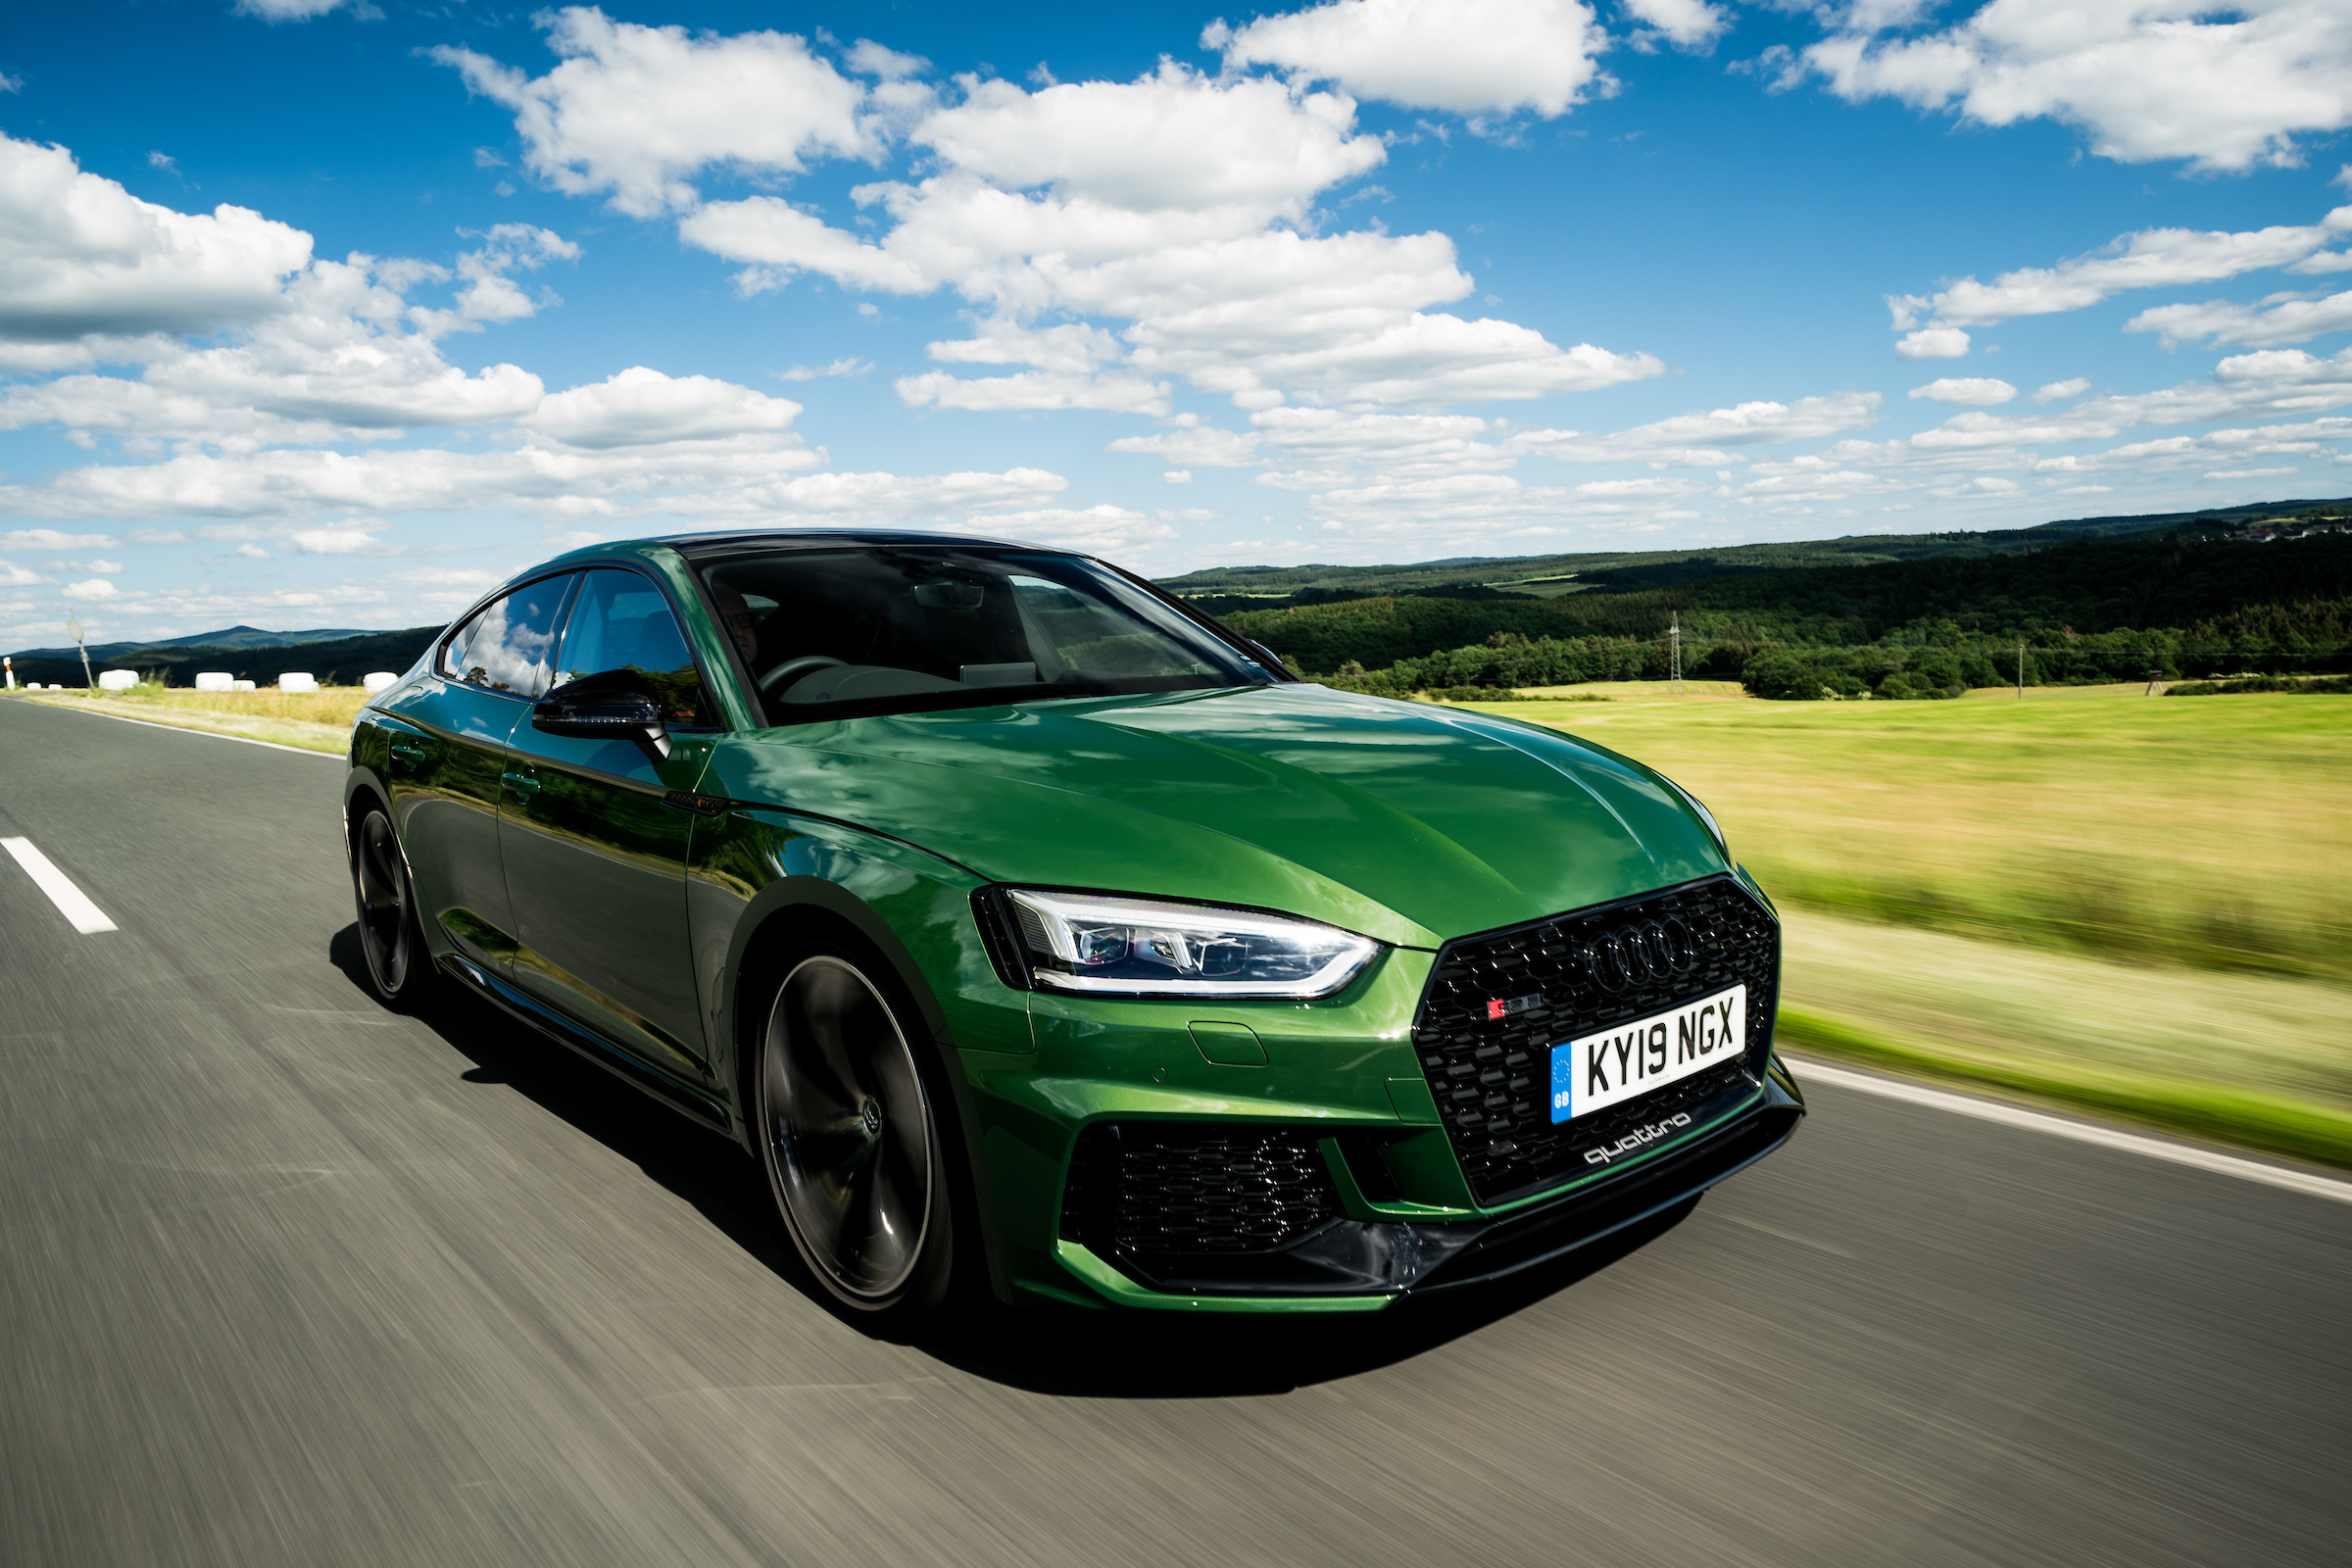 The RS5 is immensely powerful thanks to a turbocharged V6